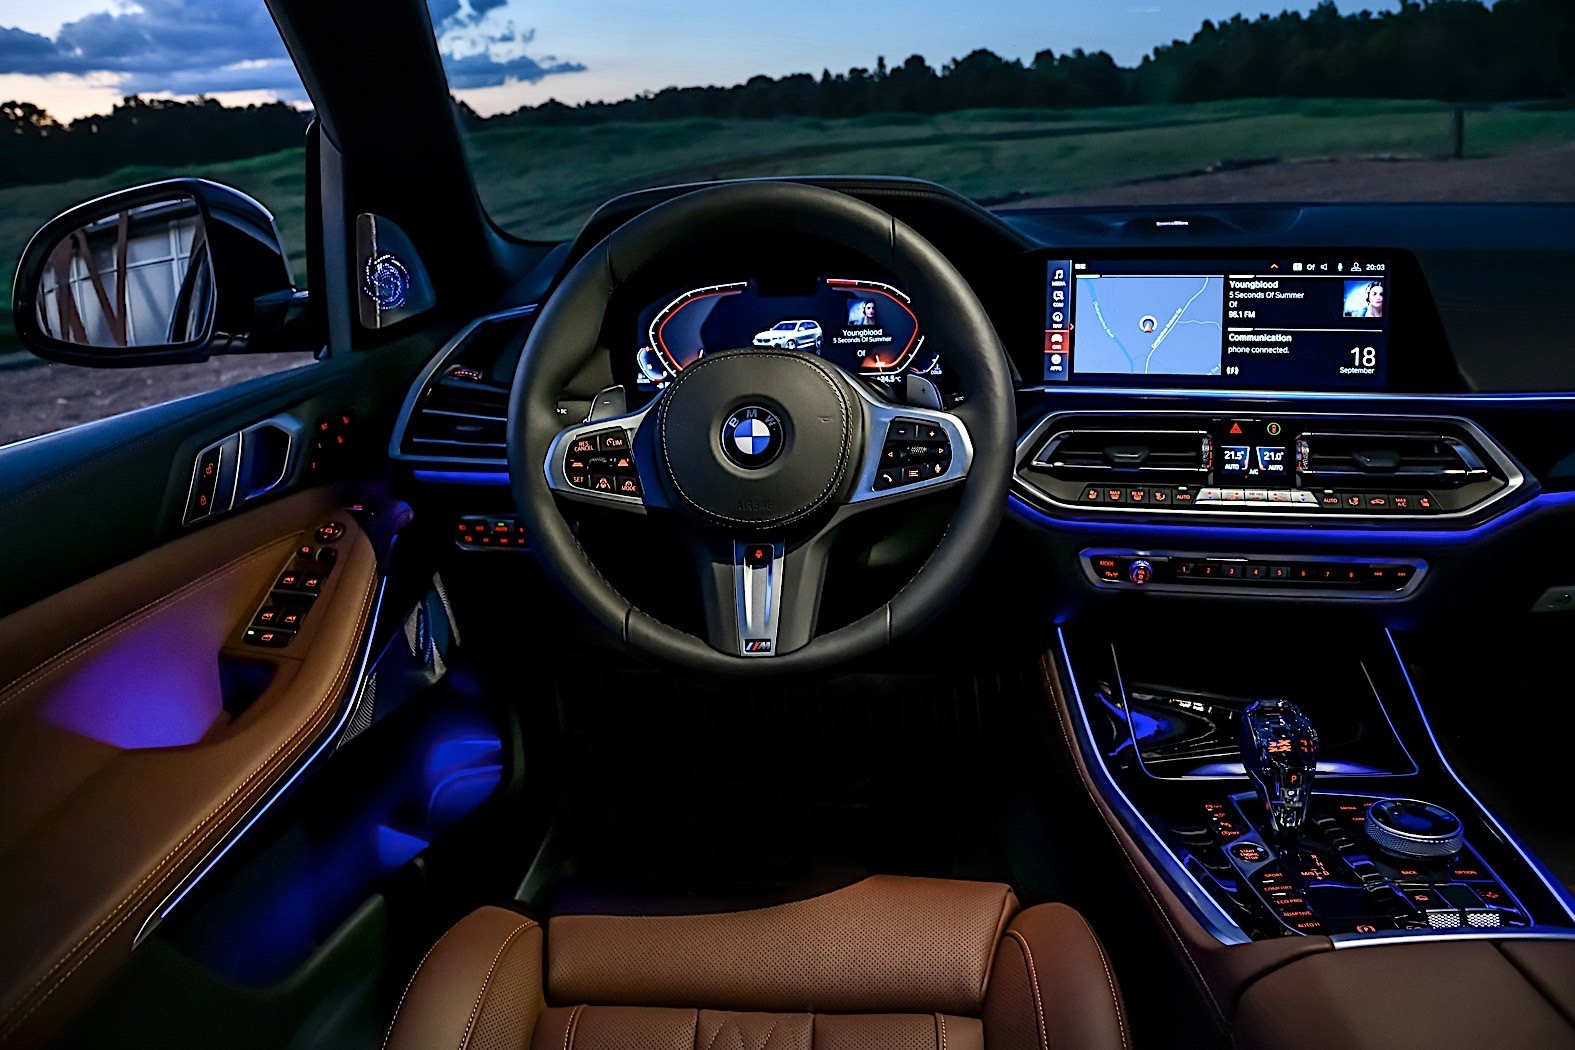 Bmw Unveils Most Powerful Versions Of The X5 And X7 Suvs The M50i